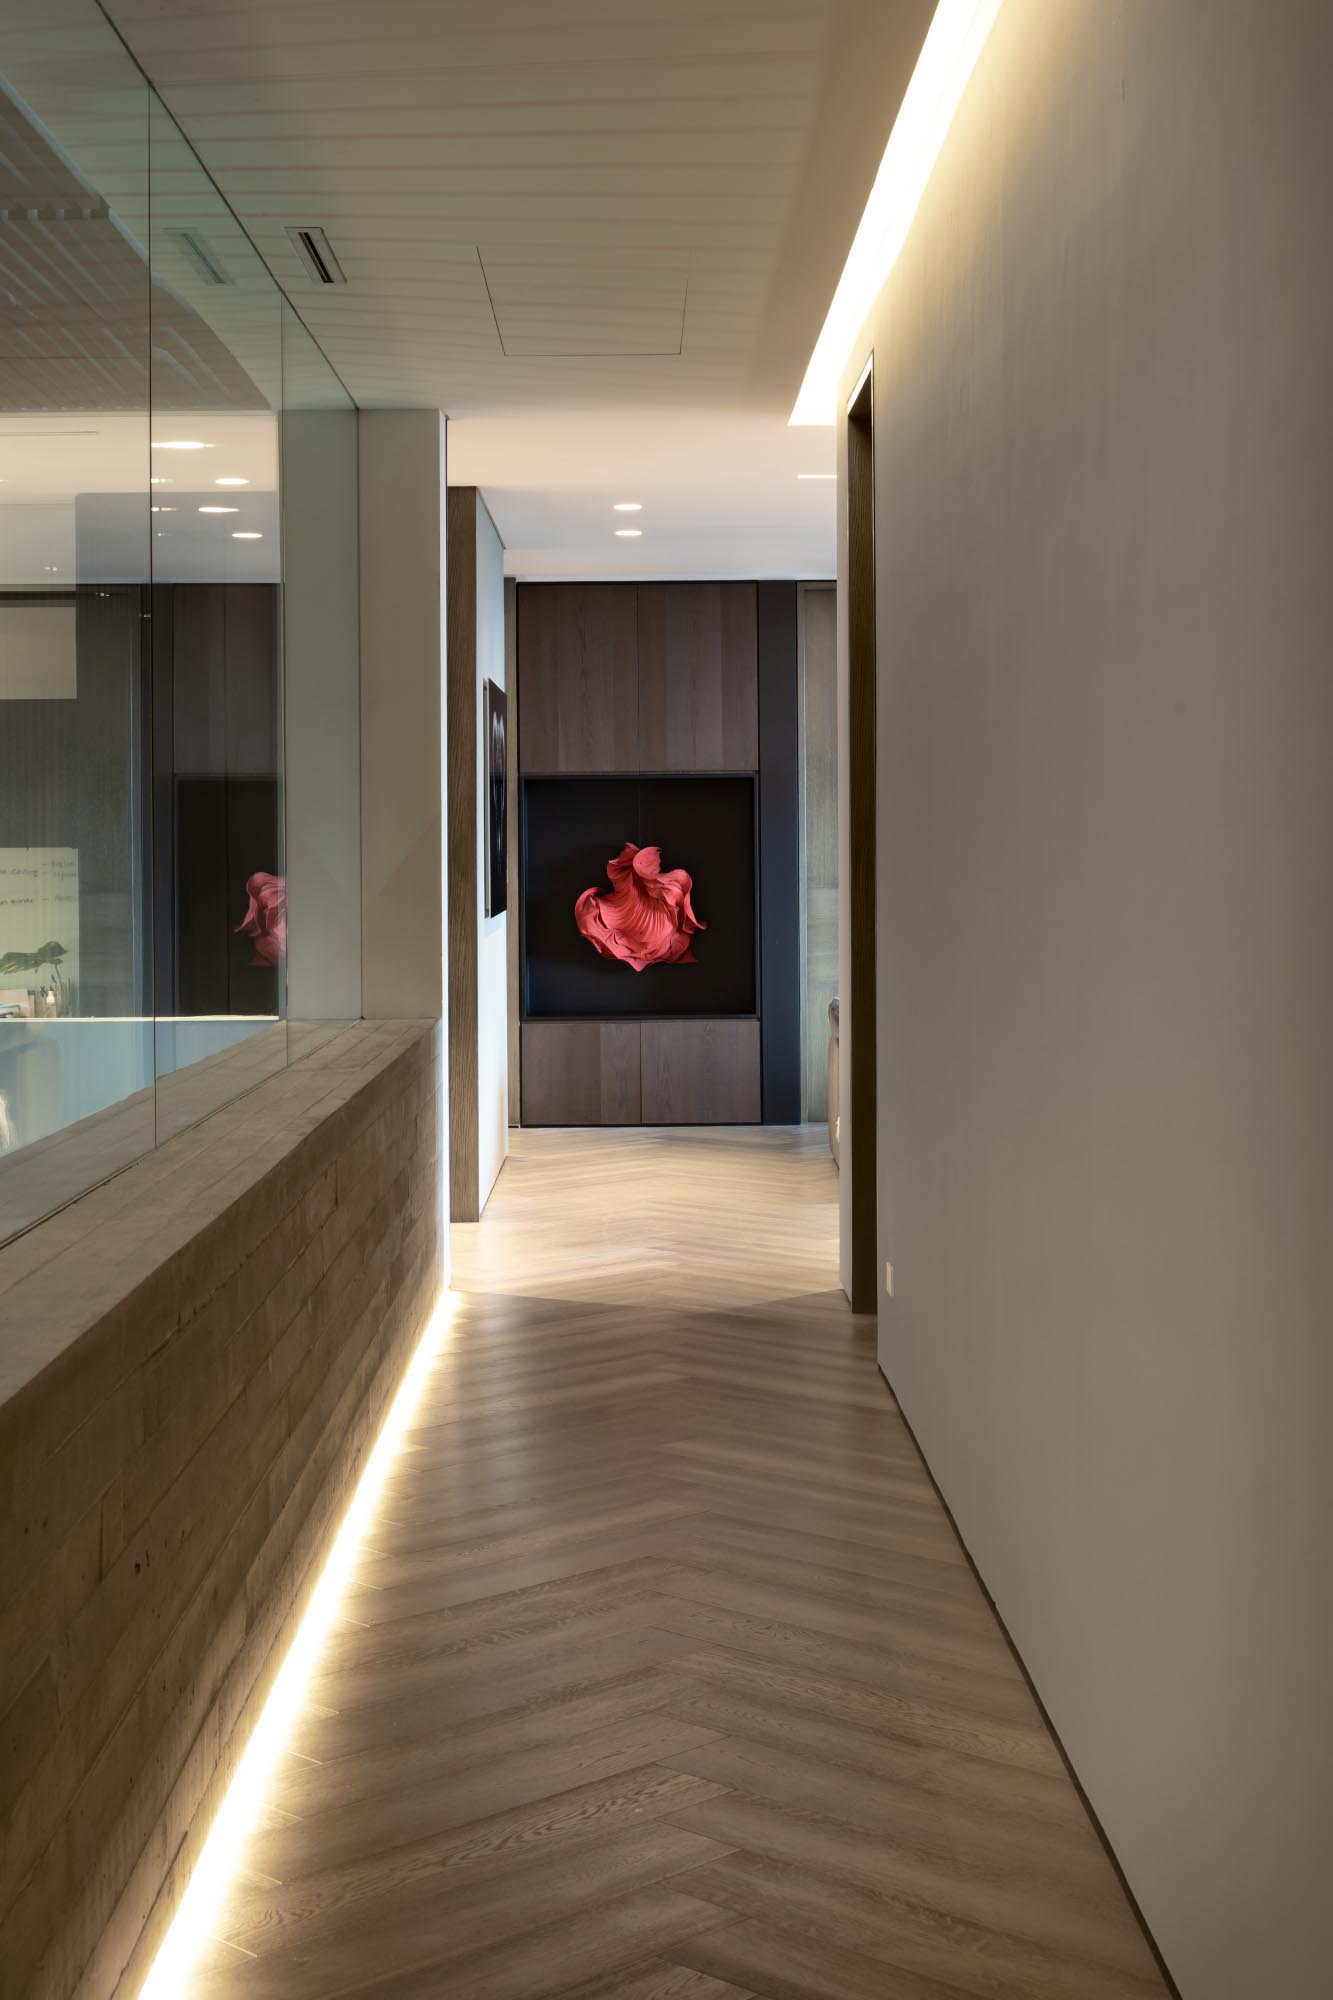 A modern hallway has a glass wall and hidden lighting incorporated into the floor and ceiling levels.